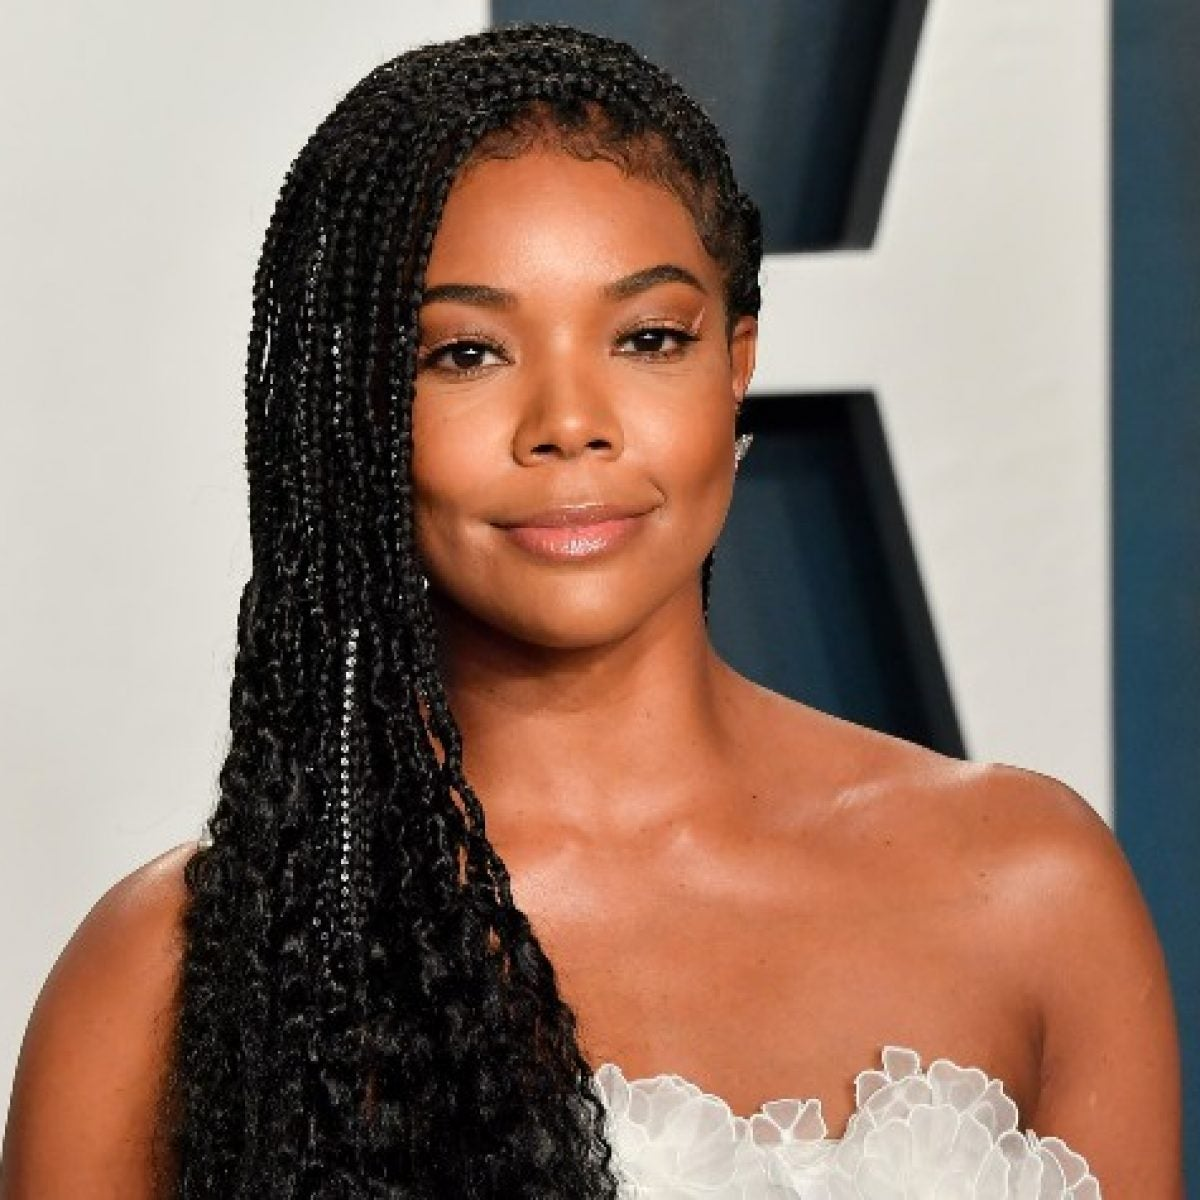 7 Easy Celebrity-Inspired Braid Styles To Try At Home